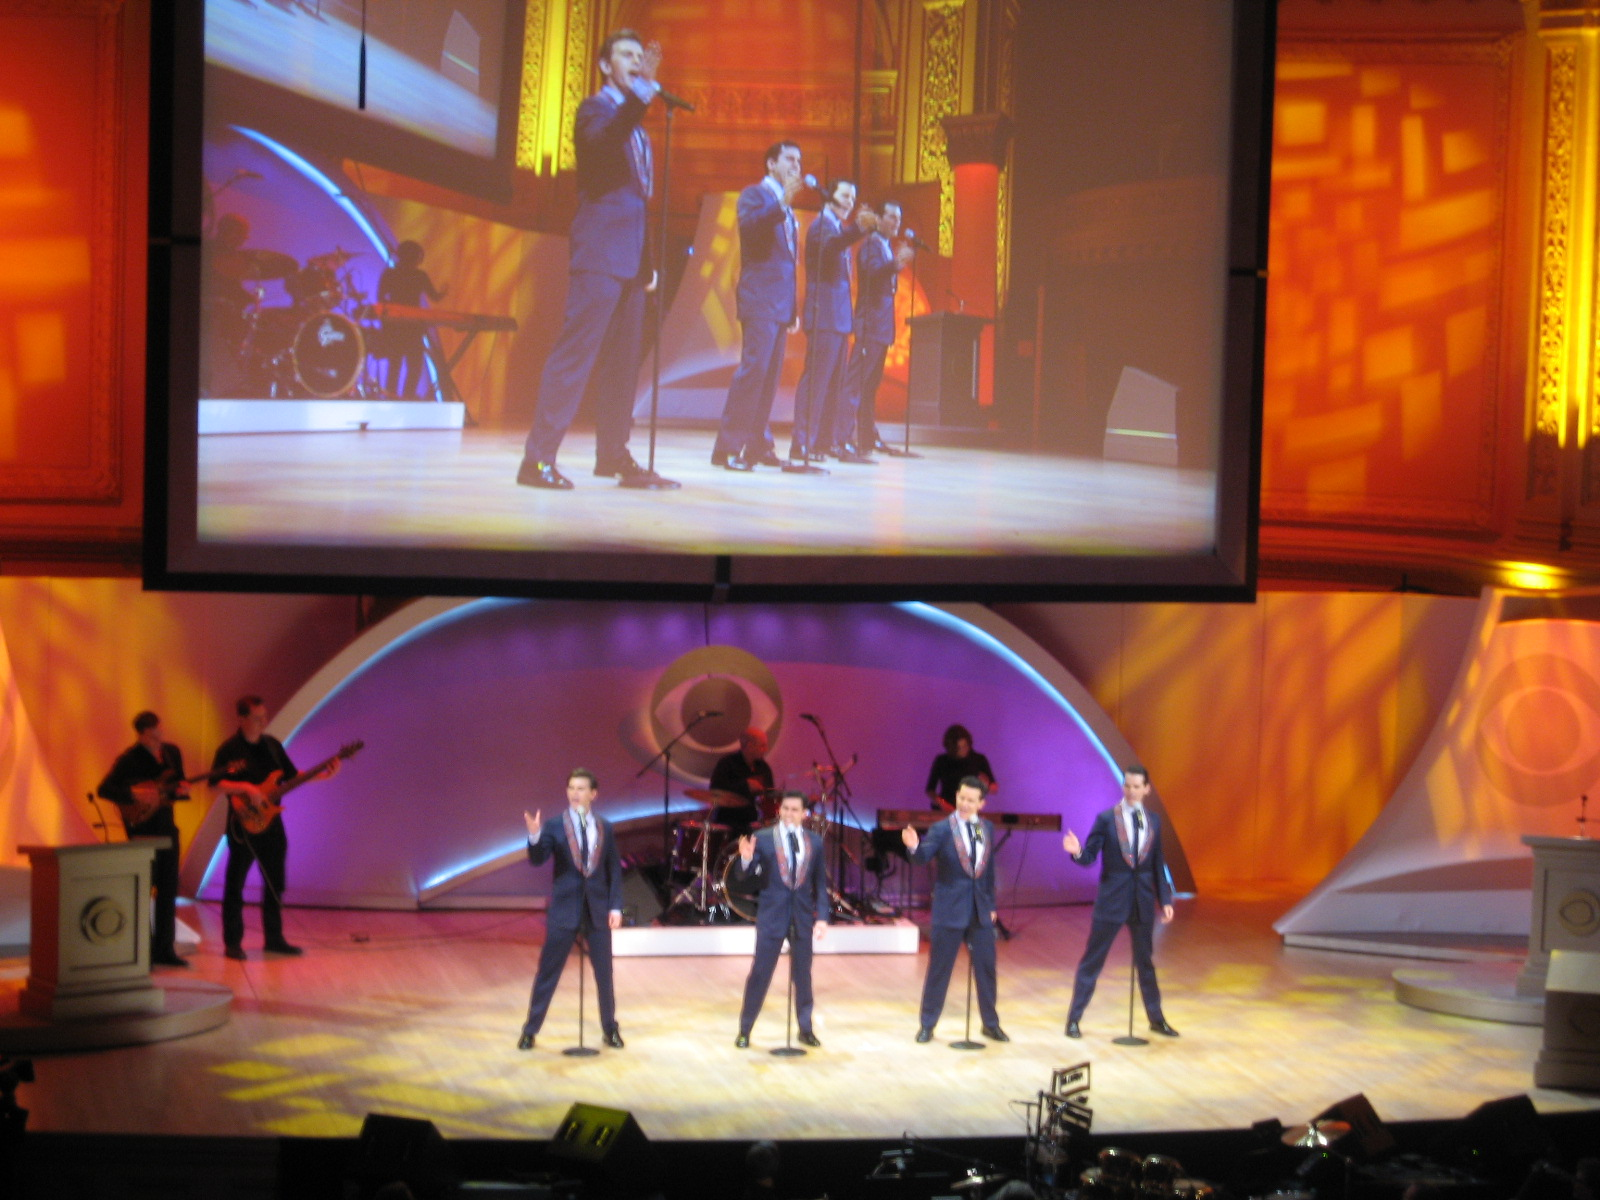 Photo 2 in 'CBS Upfront Presentation - Carnegie Hall' gallery showcasing lighting design by Mike Baldassari of Mike-O-Matic Industries LLC